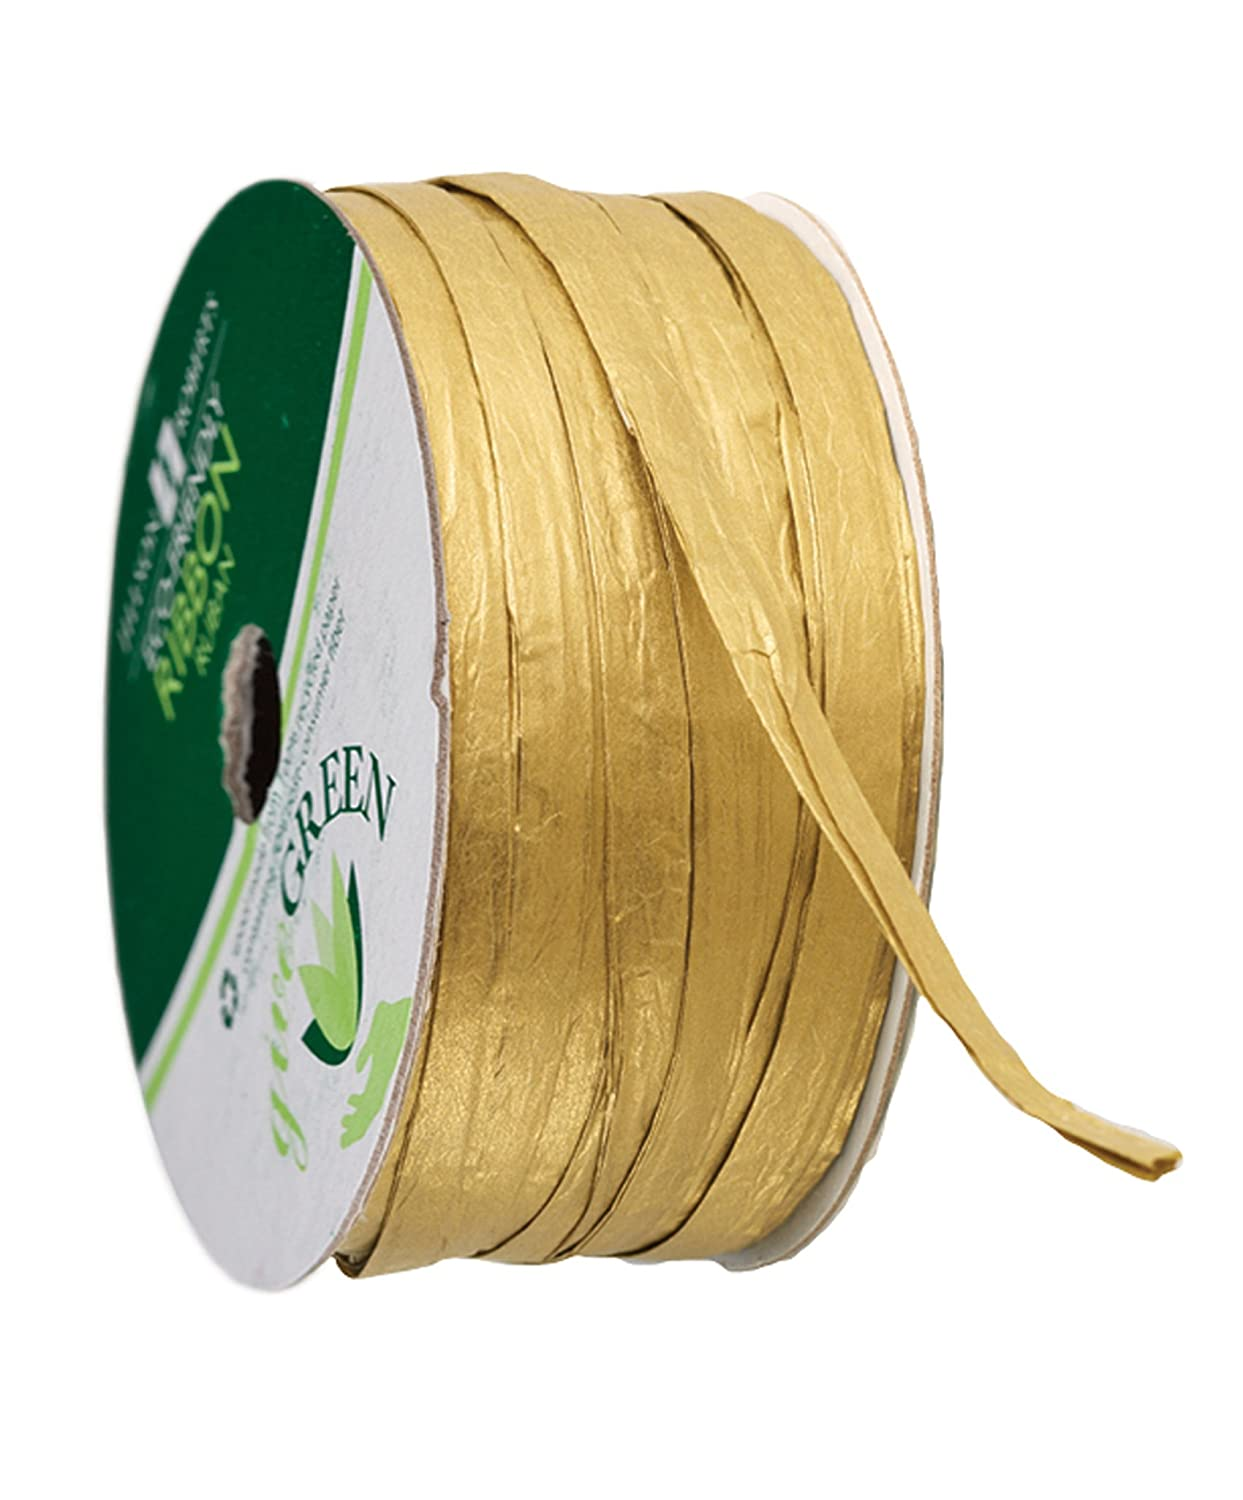 Jillson Roberts 6-Spool Count 1/4' x 50' Recycled Paper Raffia Available in 16 Colors, Natural PR18B